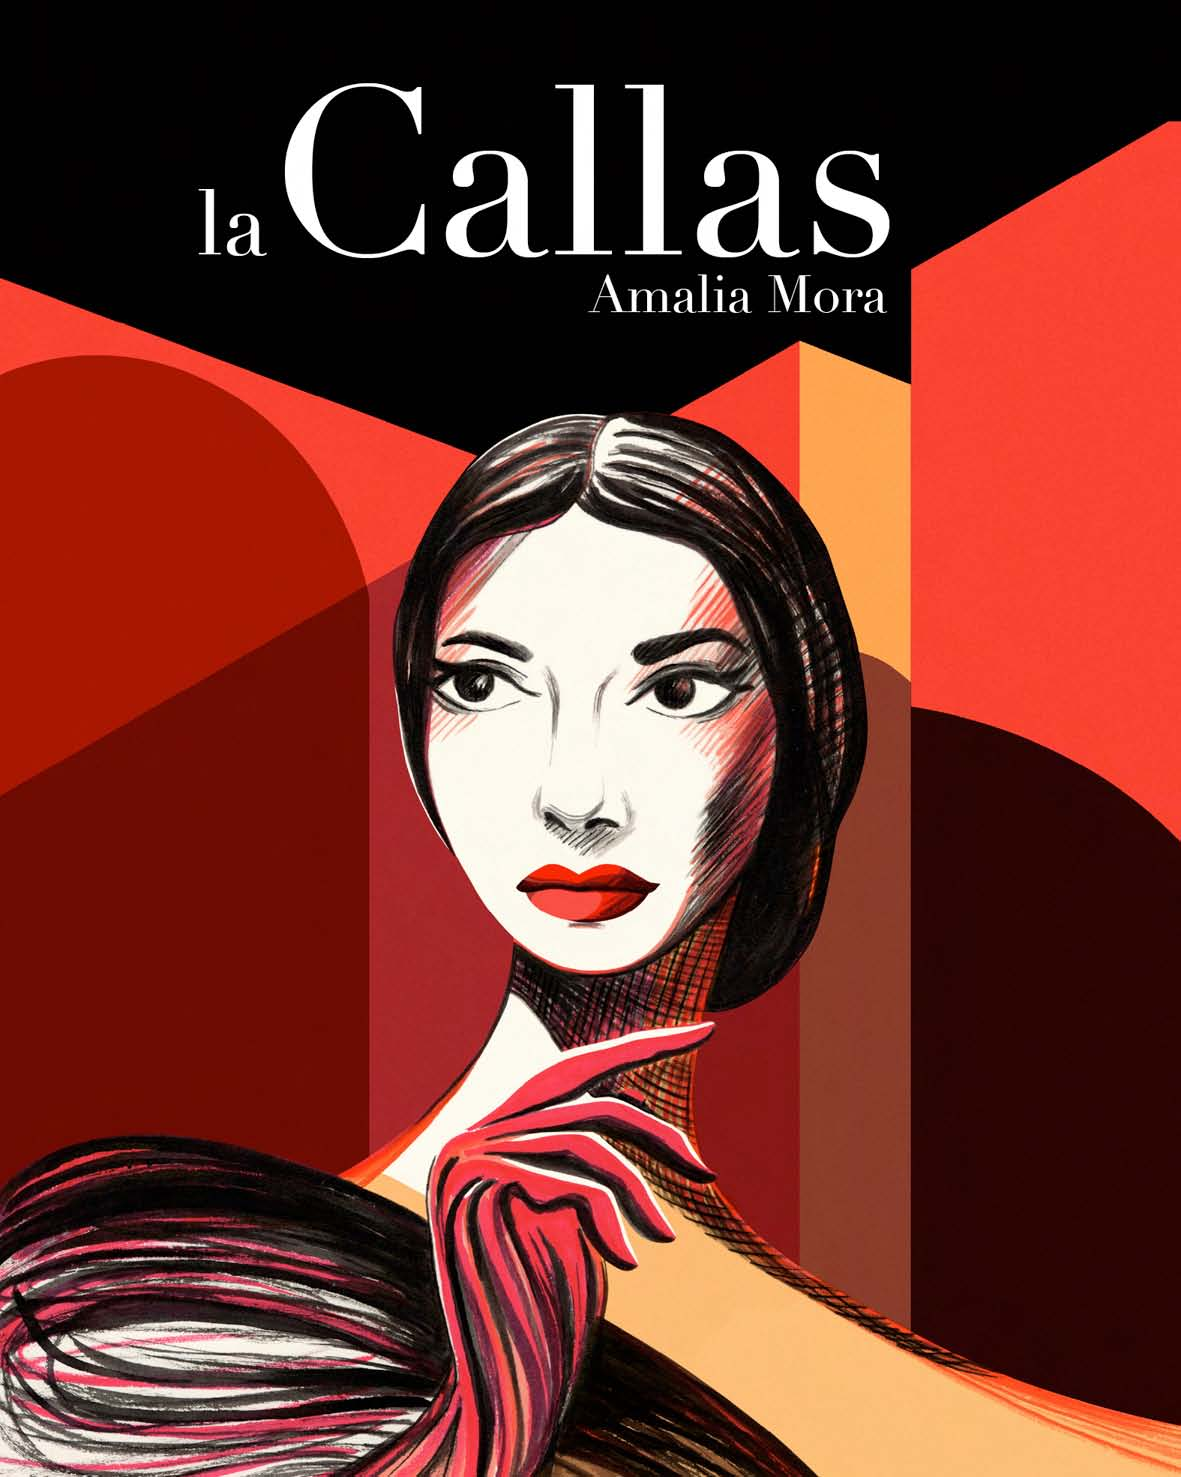 maria callas The late soprano opera singer maria callas was best known for her vocal range  and dramatic, glamorous lifestyle — she had an affair with.